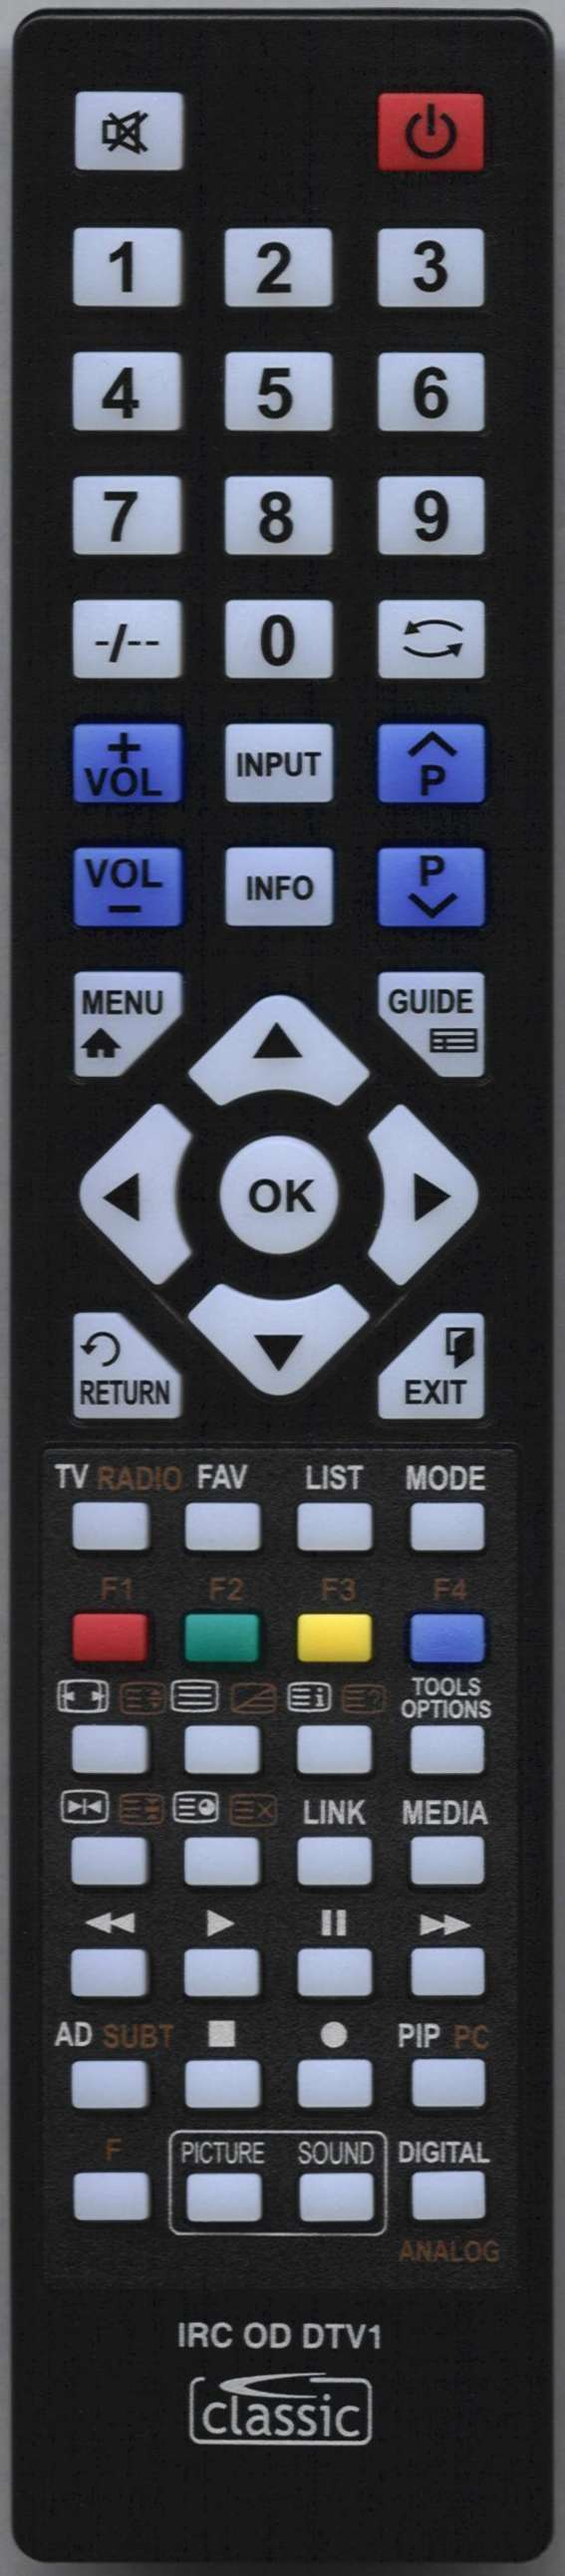 BLAUPUNKT 49/148Z-GB-11B-FGUX-UK Remote Control Alternative